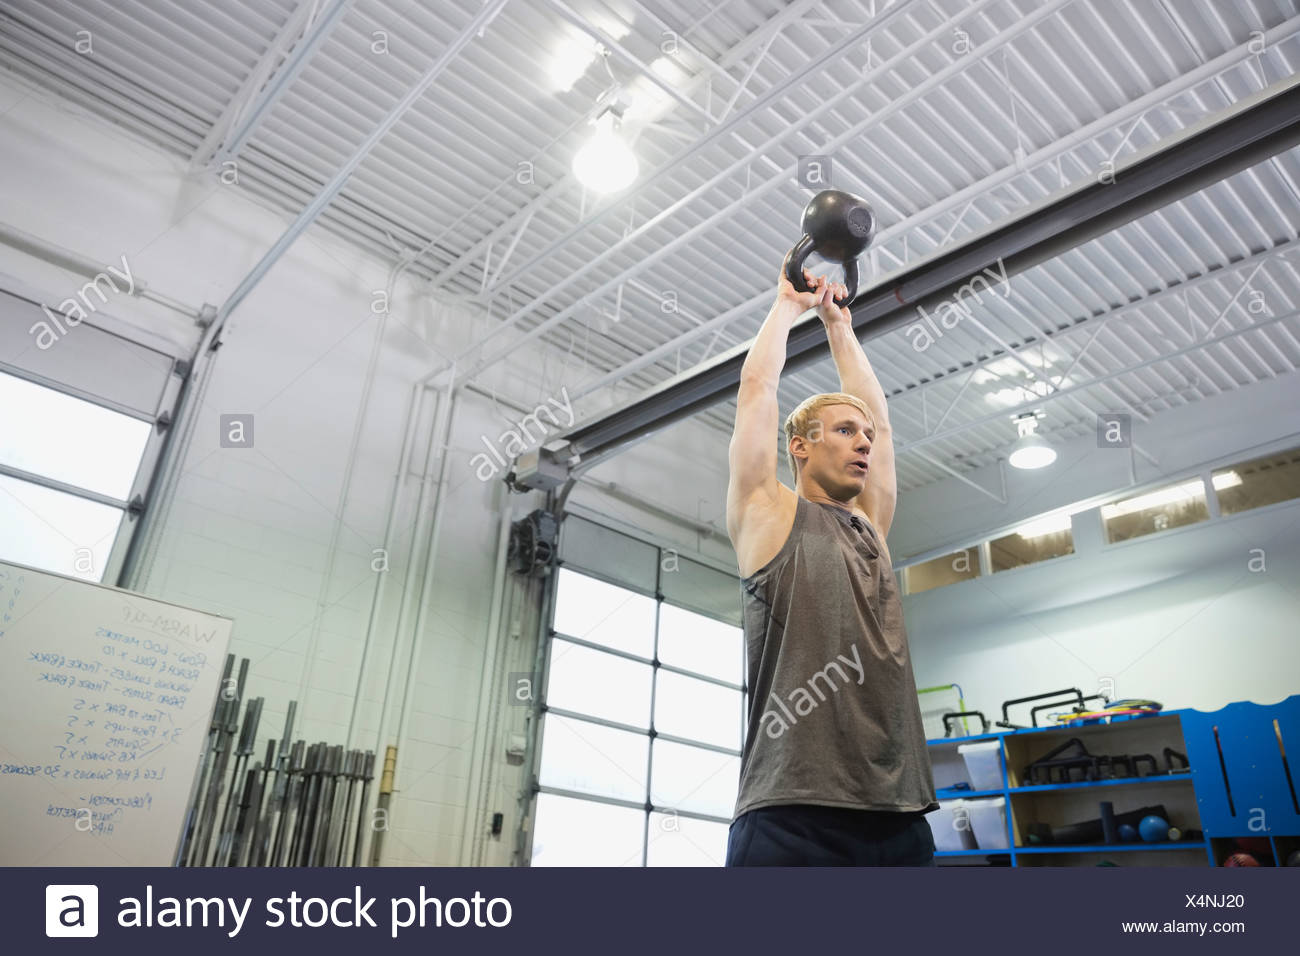 Man performing overhead kettlebell throws - Stock Image